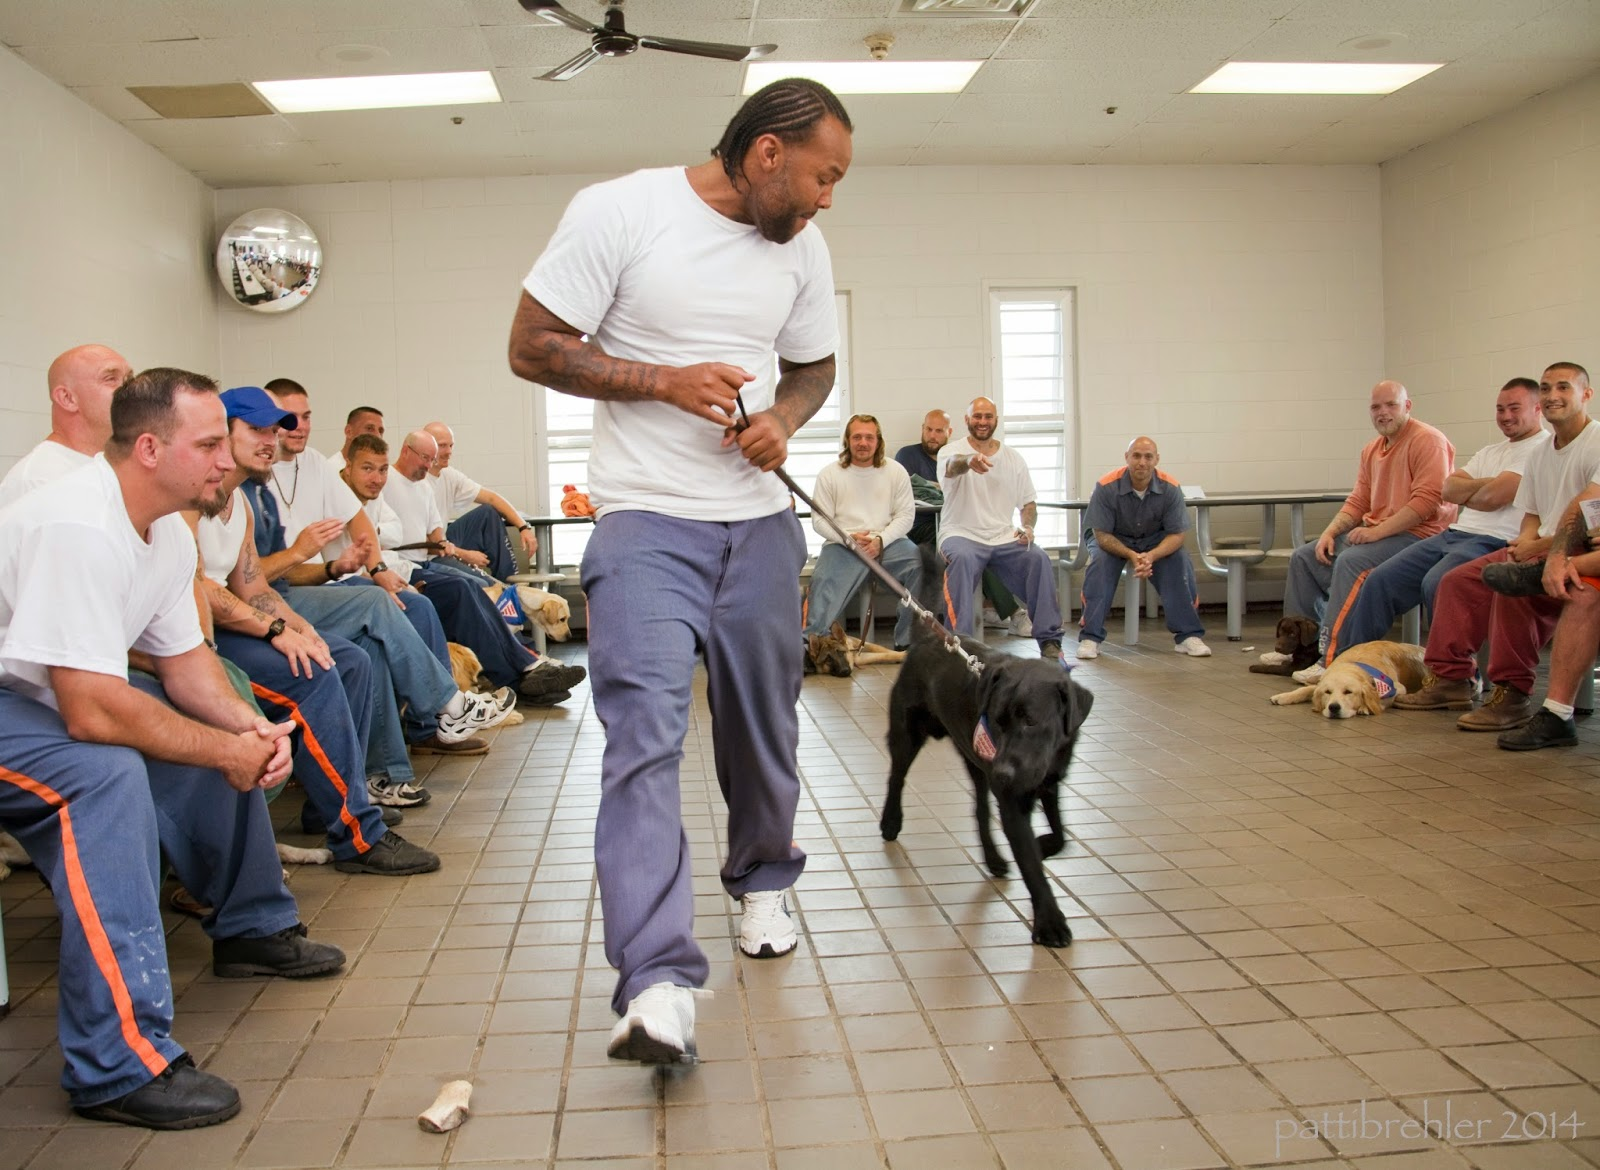 An african american wearing prison blue pants and a white t-shirt is walking toward the camera with a leash in his hands, looking down to a young black lab at his side. There are men sitting all around three sides of the room behind the man and dog.